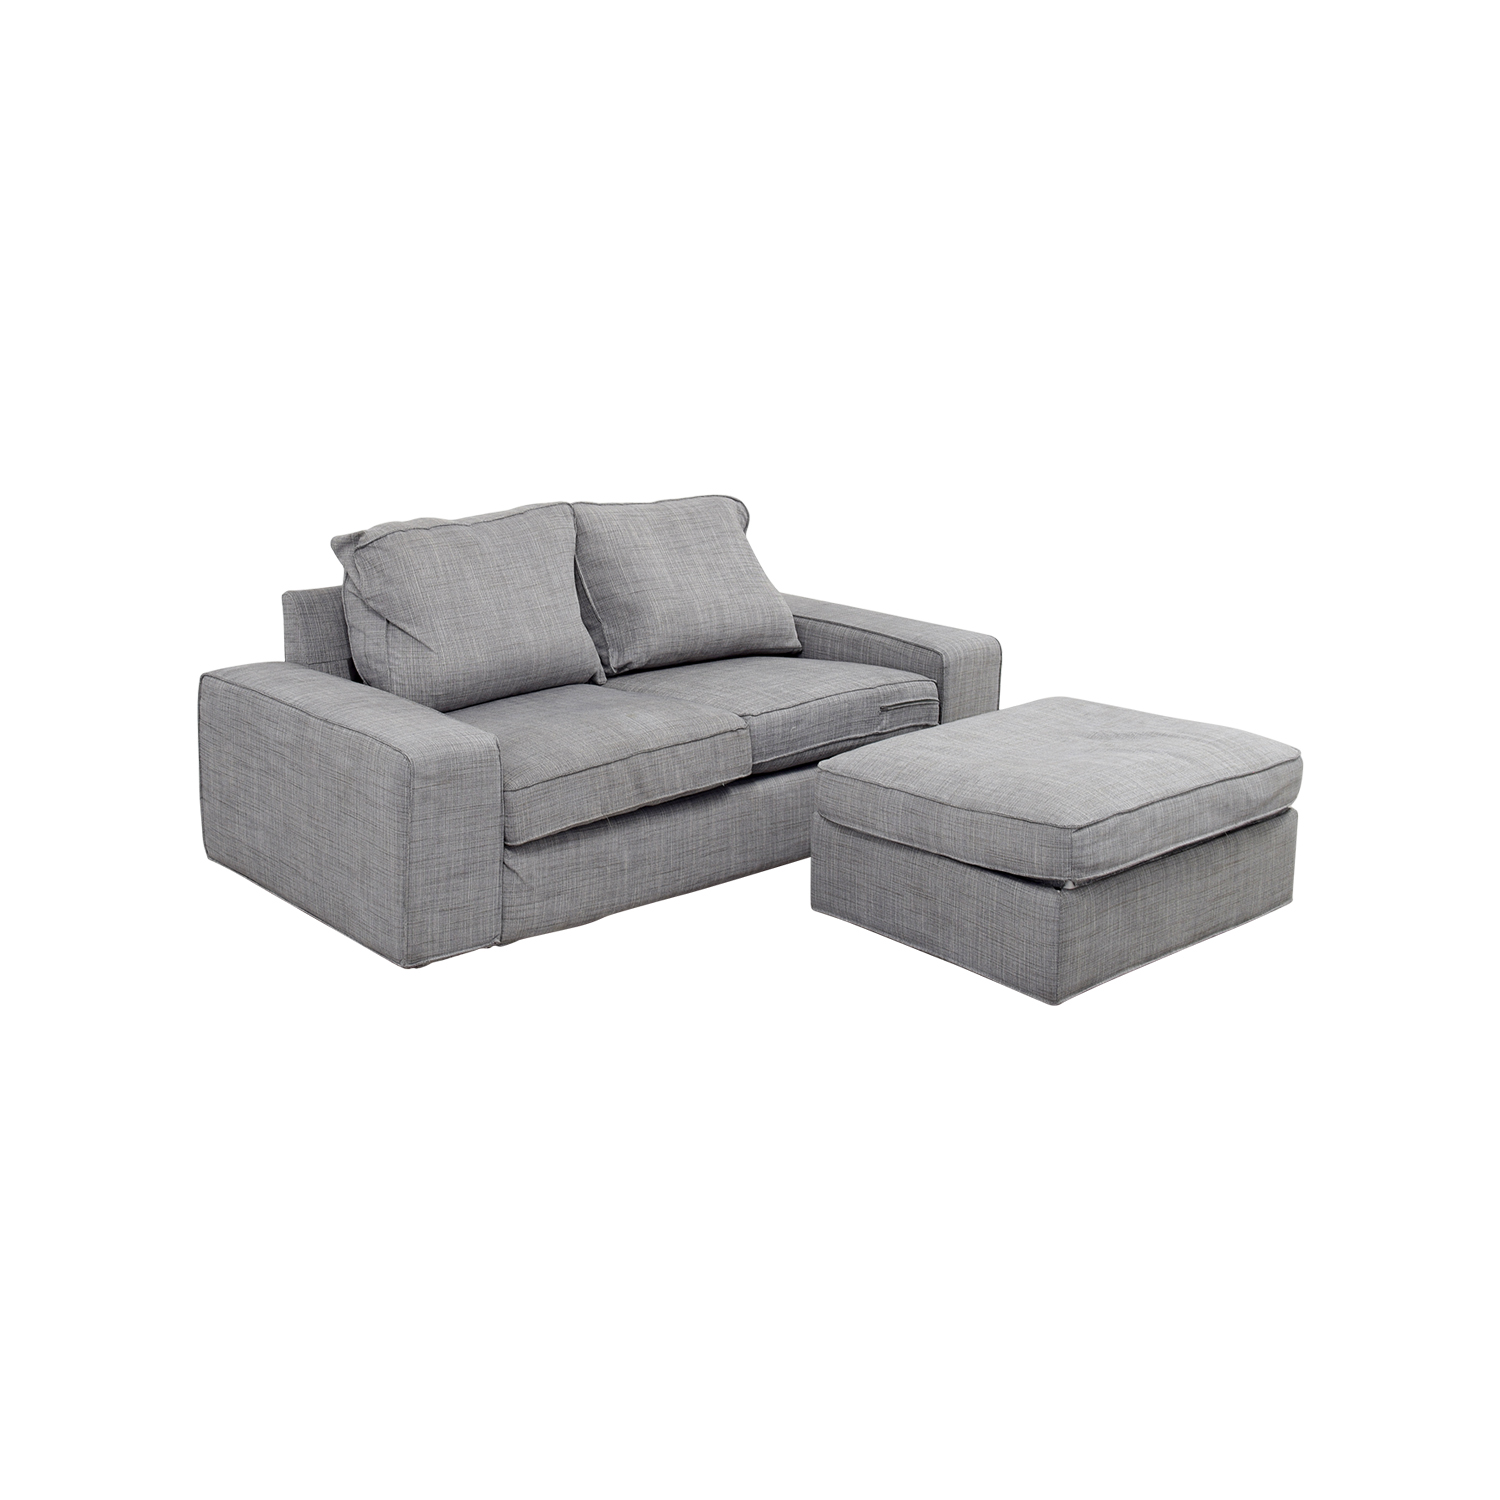 ikea chair with ottoman aluminum folding lawn chairs walmart 64 off kivik gray sofa and sofas